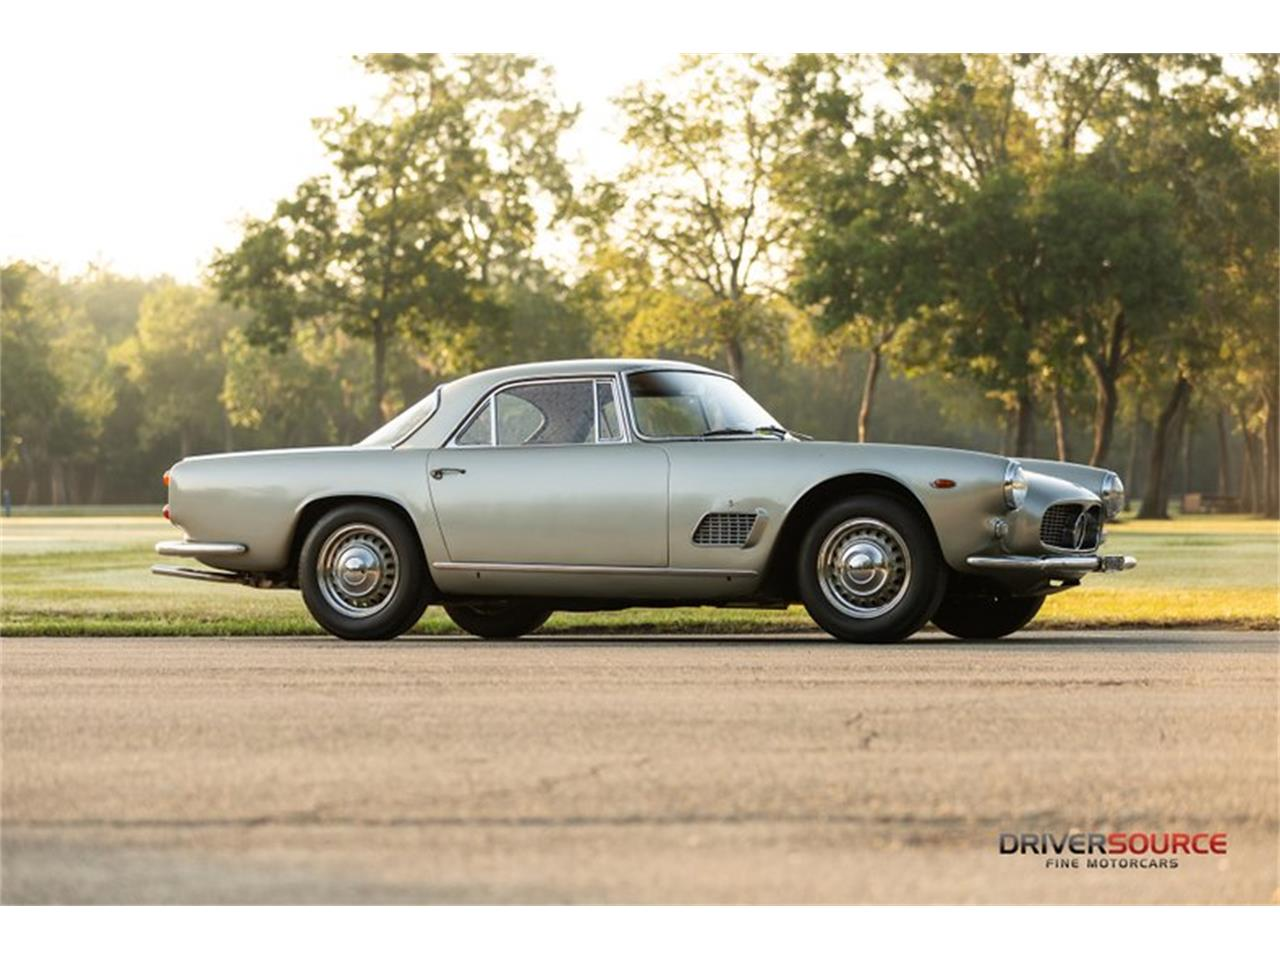 Large Picture of Classic 1962 3500 located in Texas - $278,500.00 Offered by Driversource - OCR7